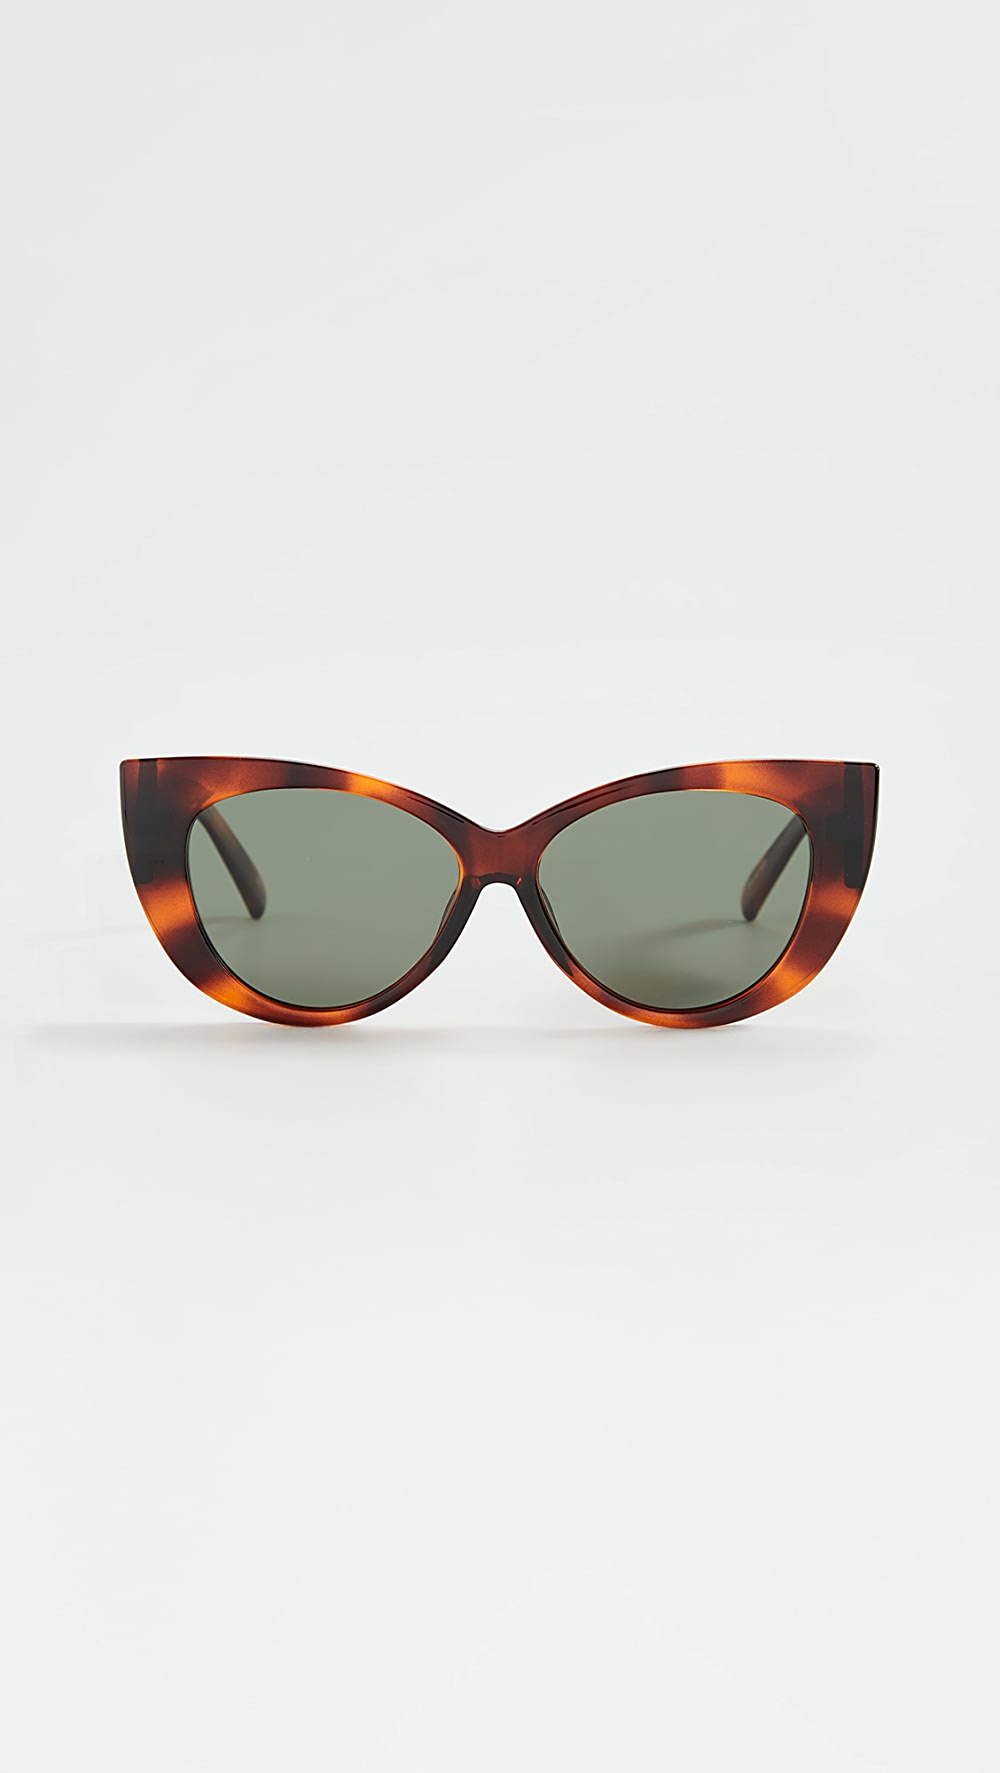 Analytical Le Specs - Feline Fine Sunglasses 100% Original